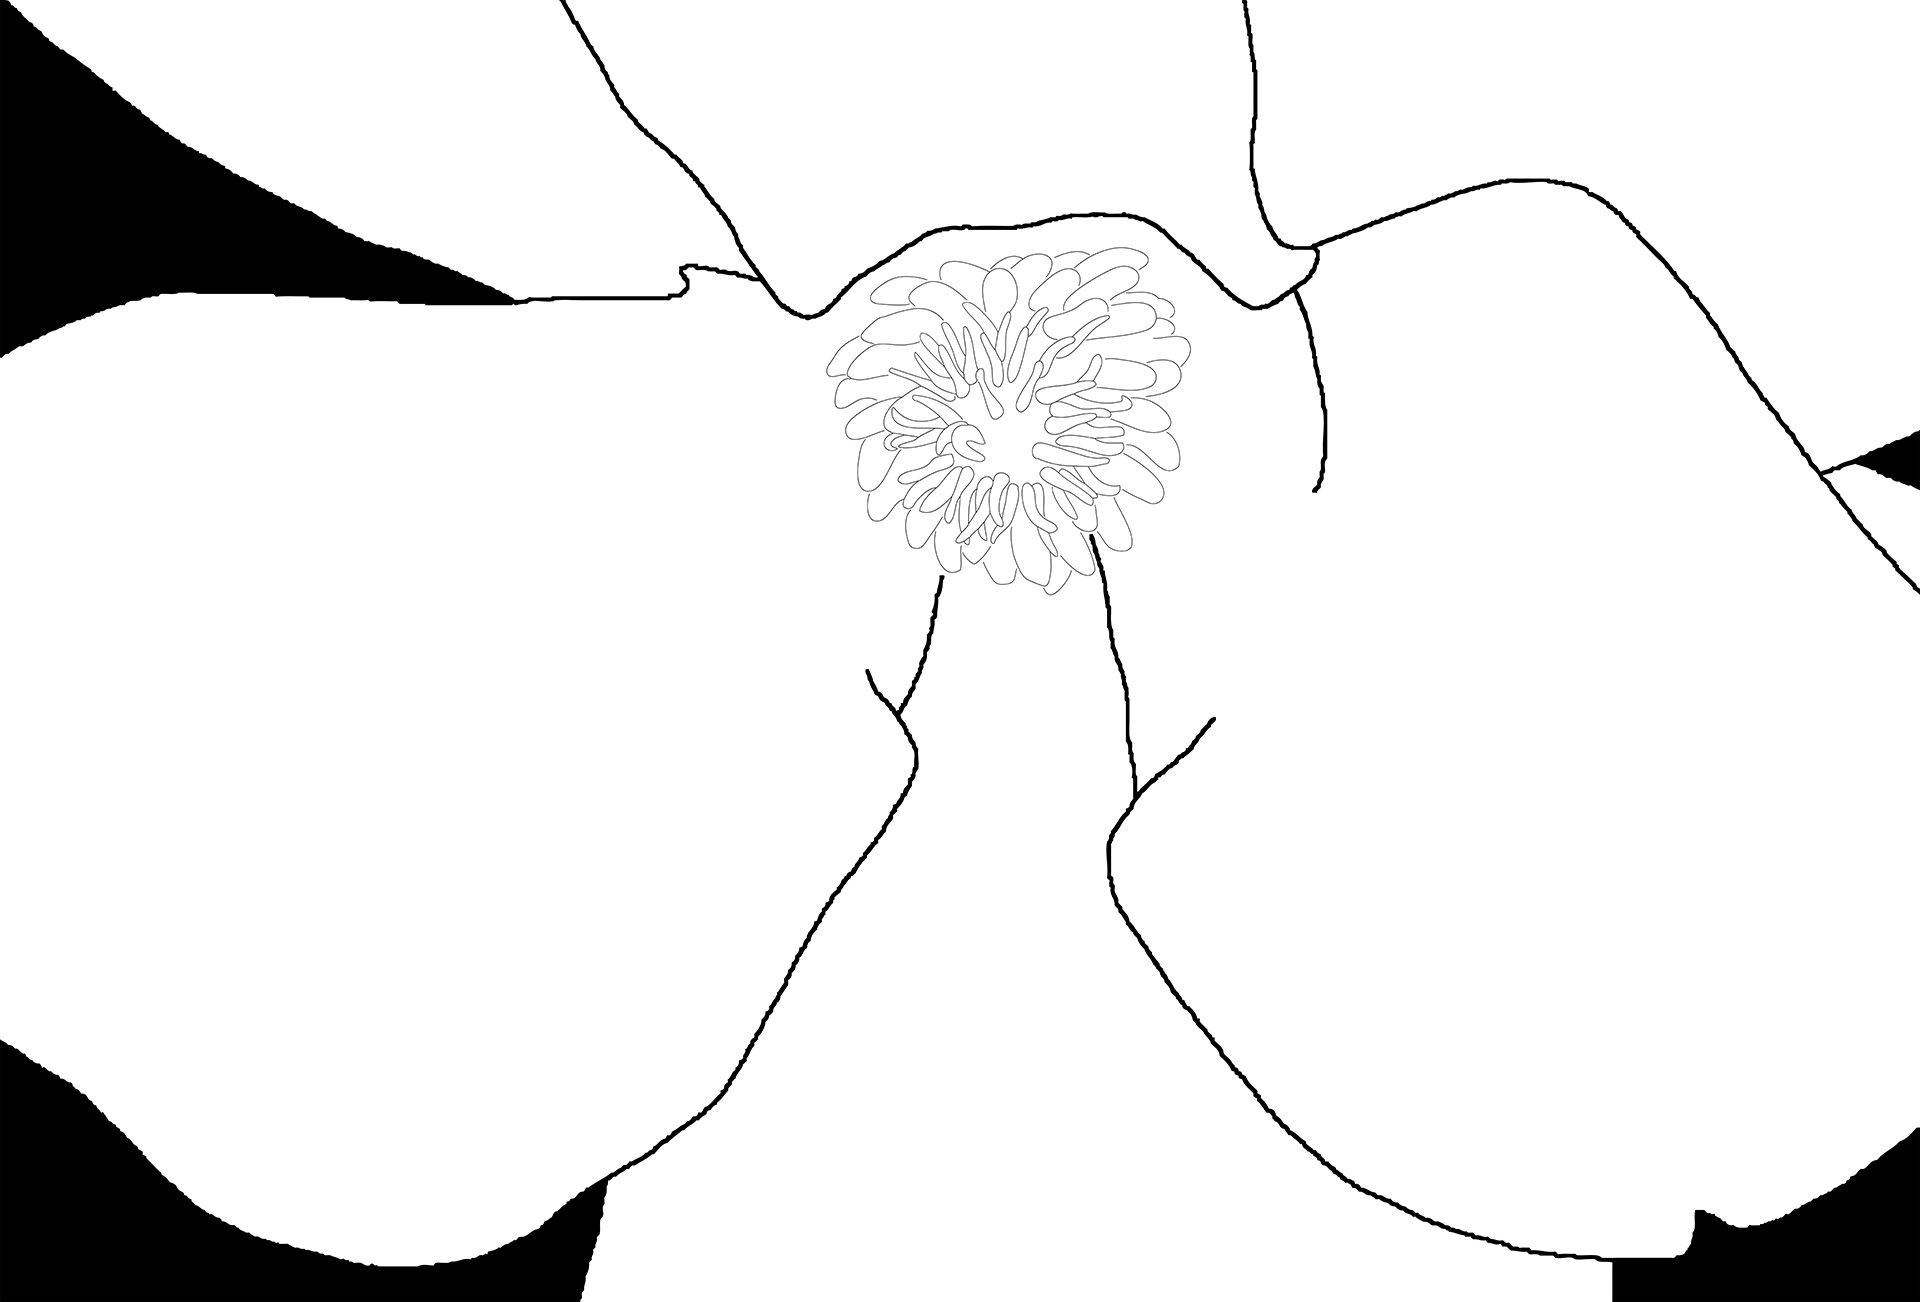 Magnolia 4577 BW Drawing